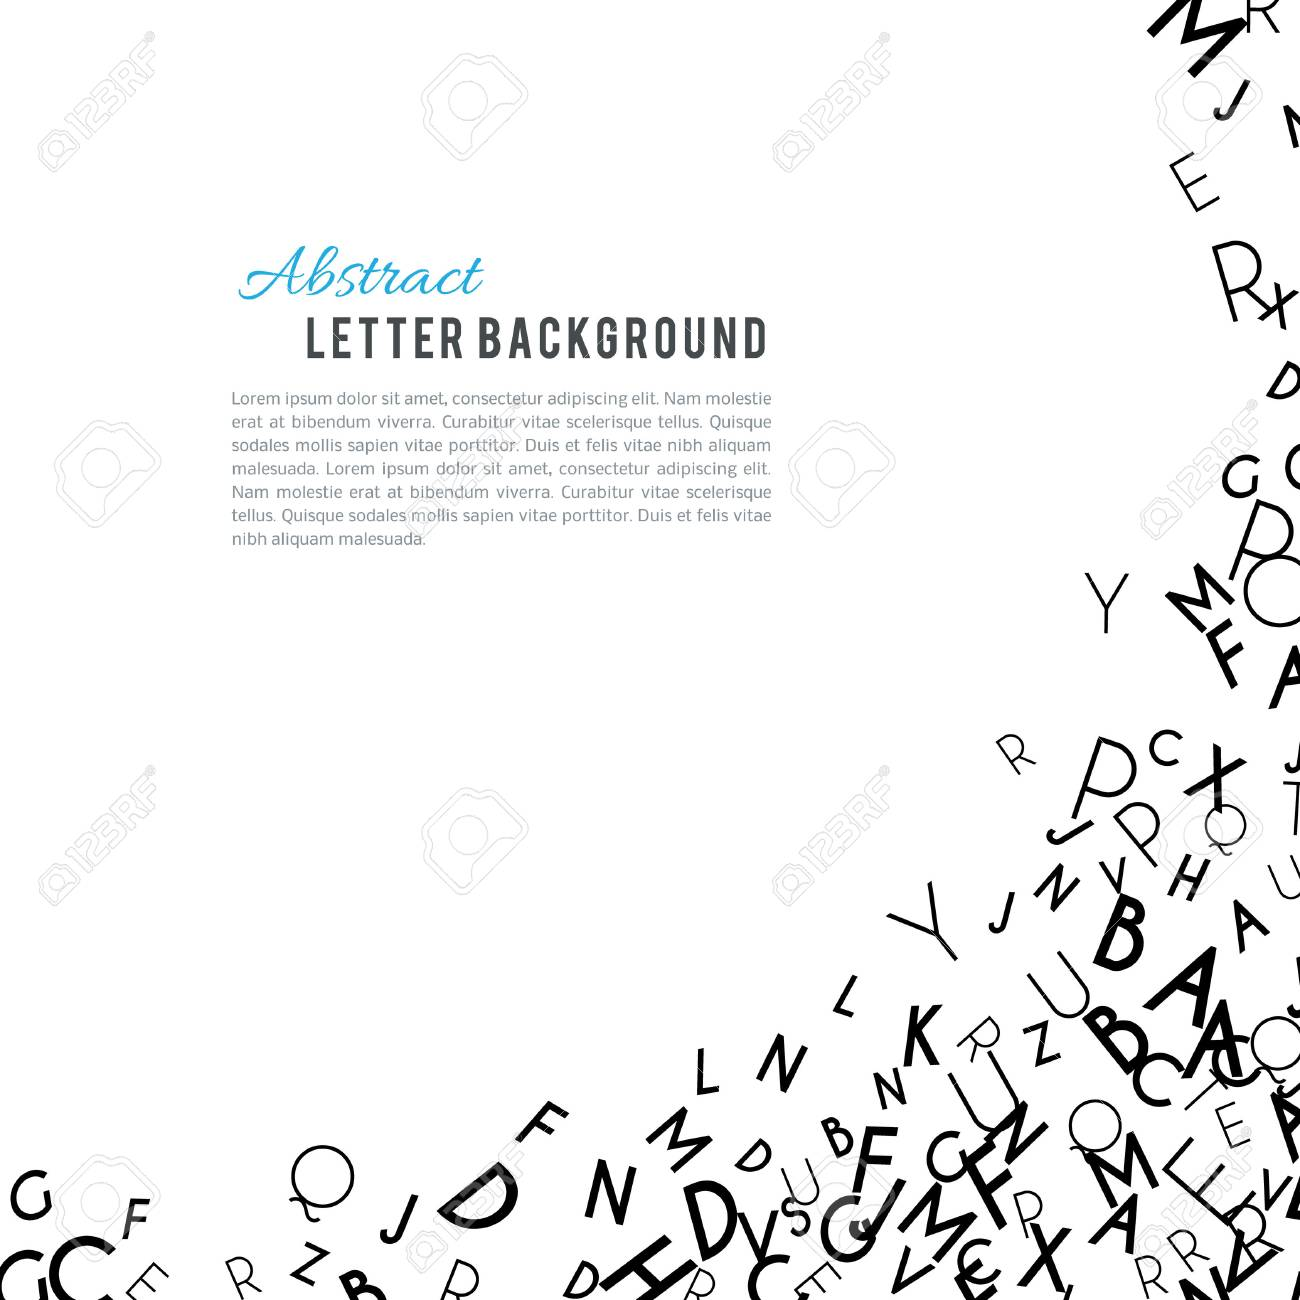 Abstract Black Alphabet Ornament Frame Isolated On White Background Illustration For Education Writing Design